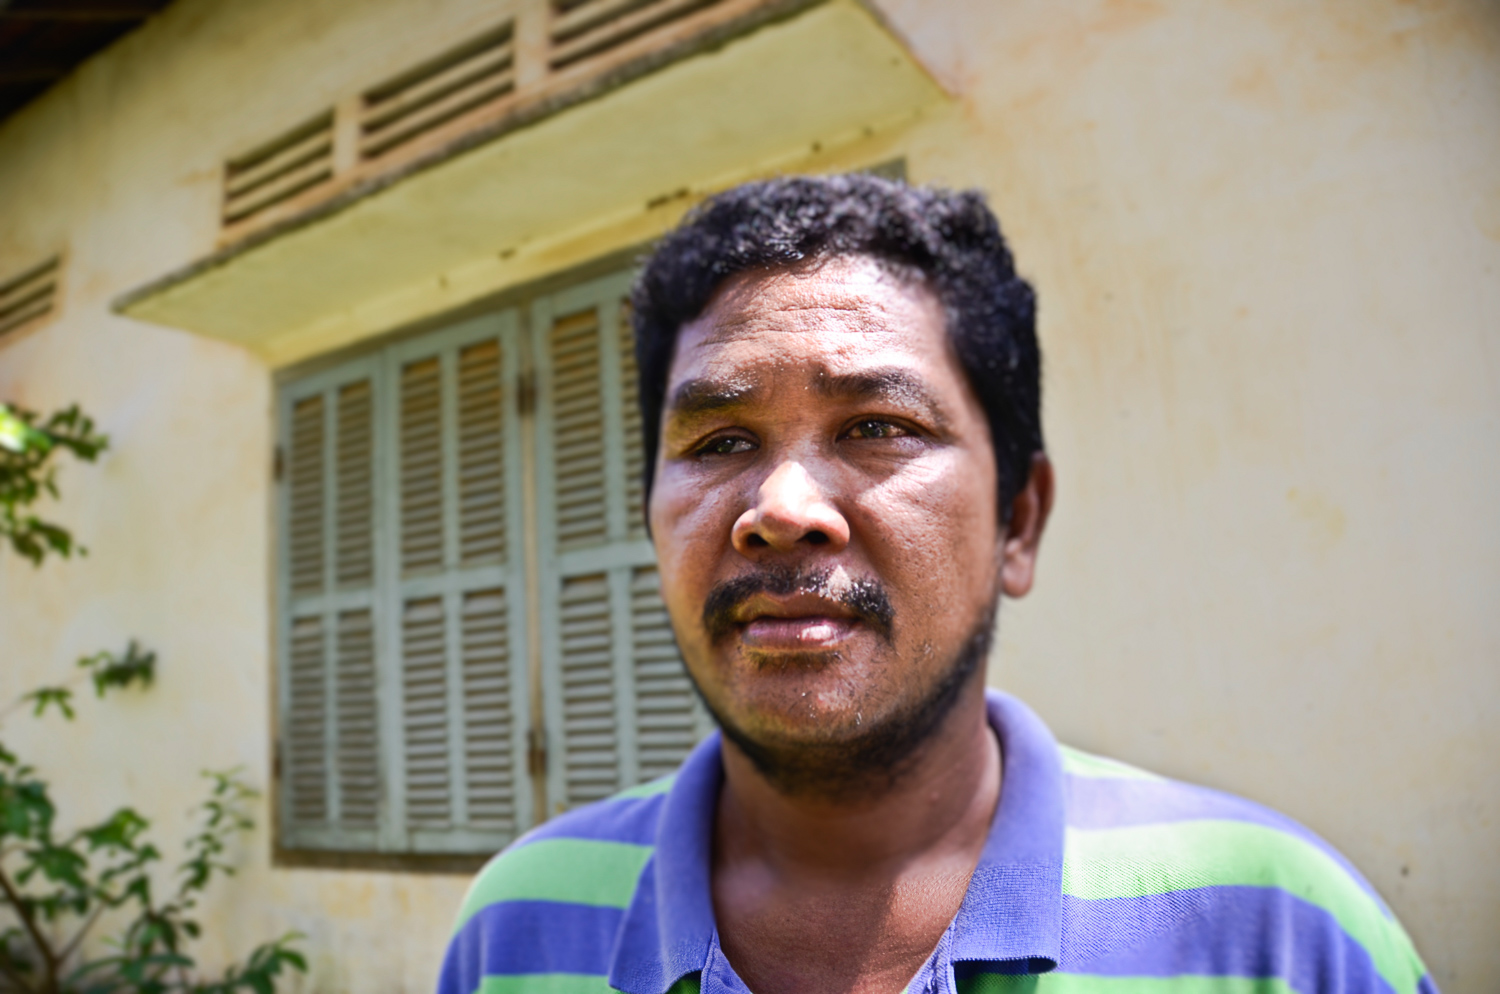 Khoem Sarom stands near his home outside Cambodia's capital, Phnom Penh. He has been searching for his niece ever since the pair was separated after the Khmer Rouge fell from power.